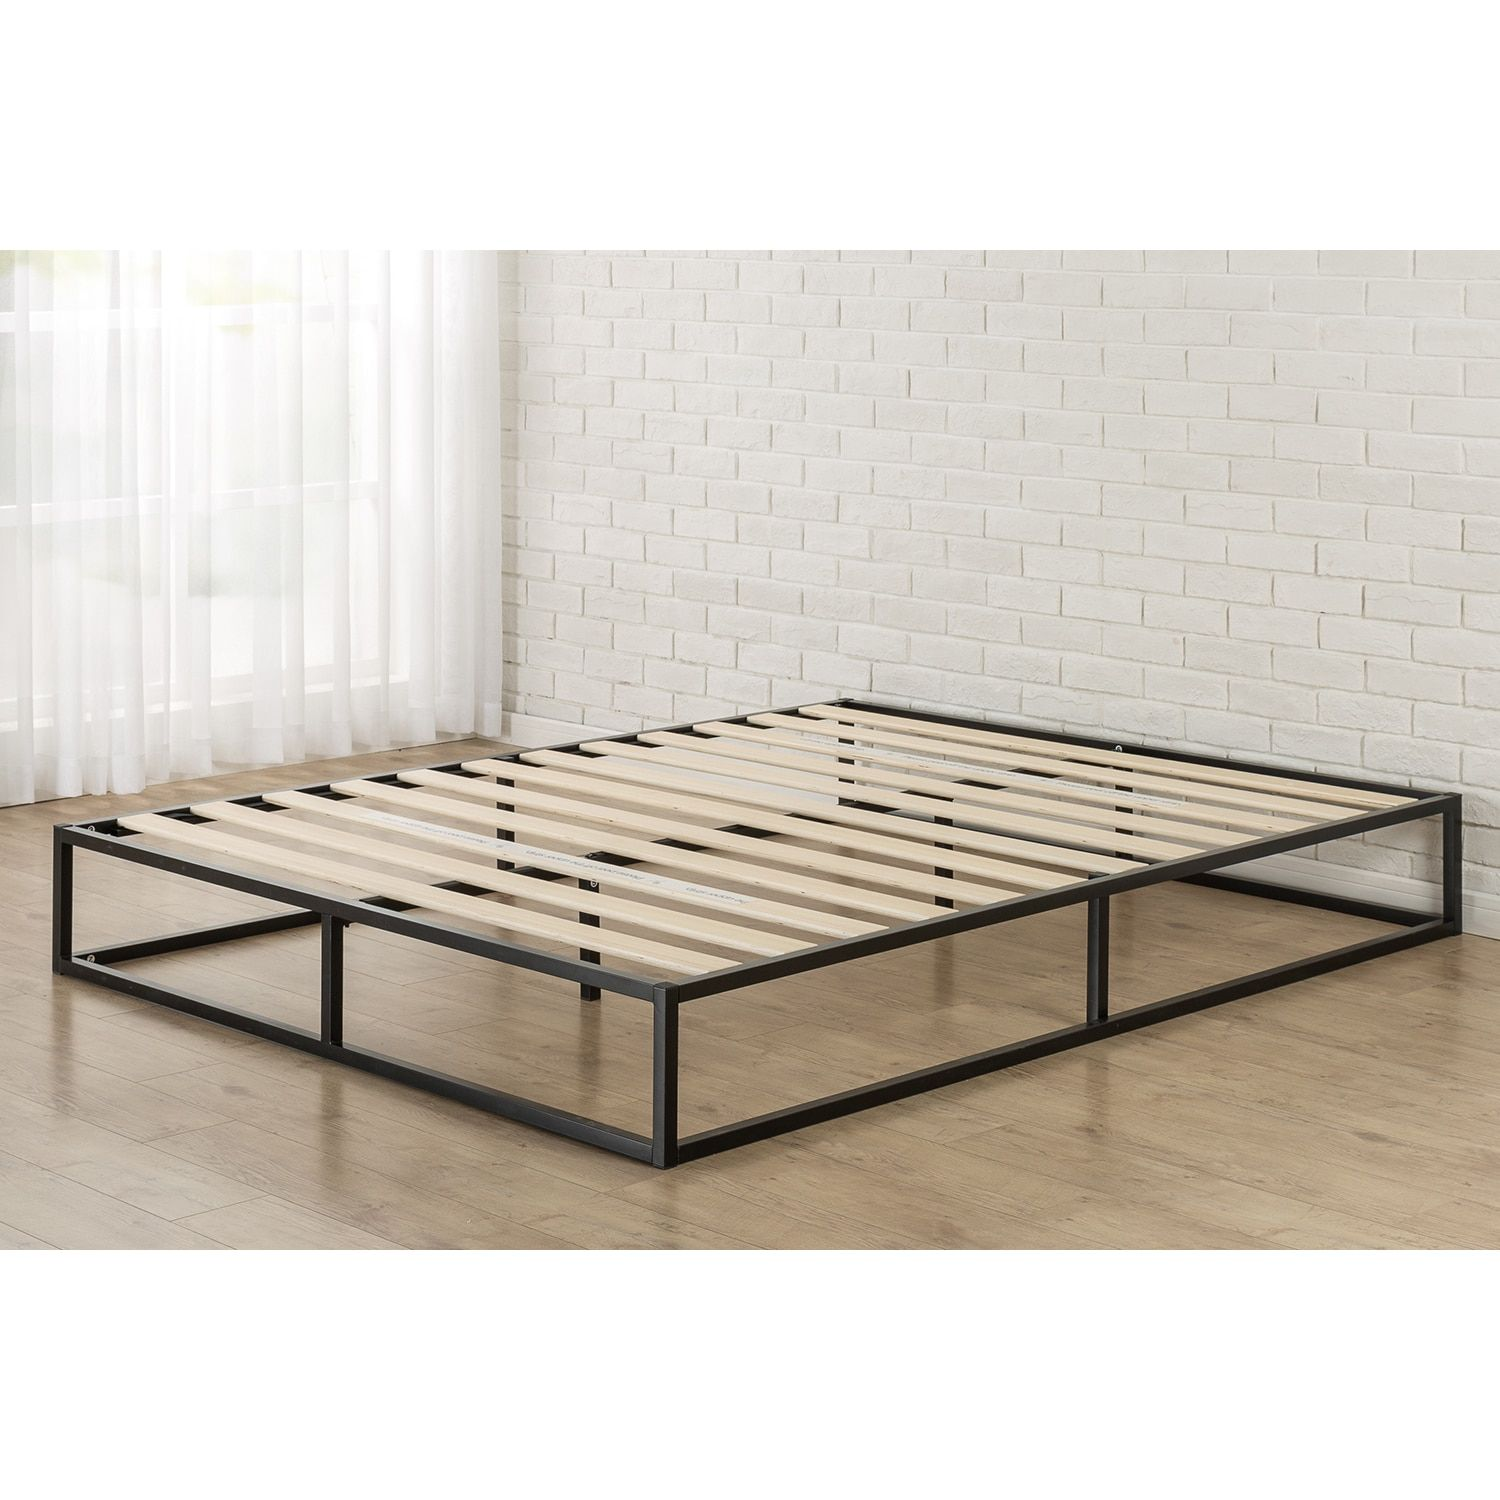 Priage 10 Inch Full Size Metal Platform Bed Frame Full Black Metal Platform Bed Platform Bed Frame Full Metal Bed Frame